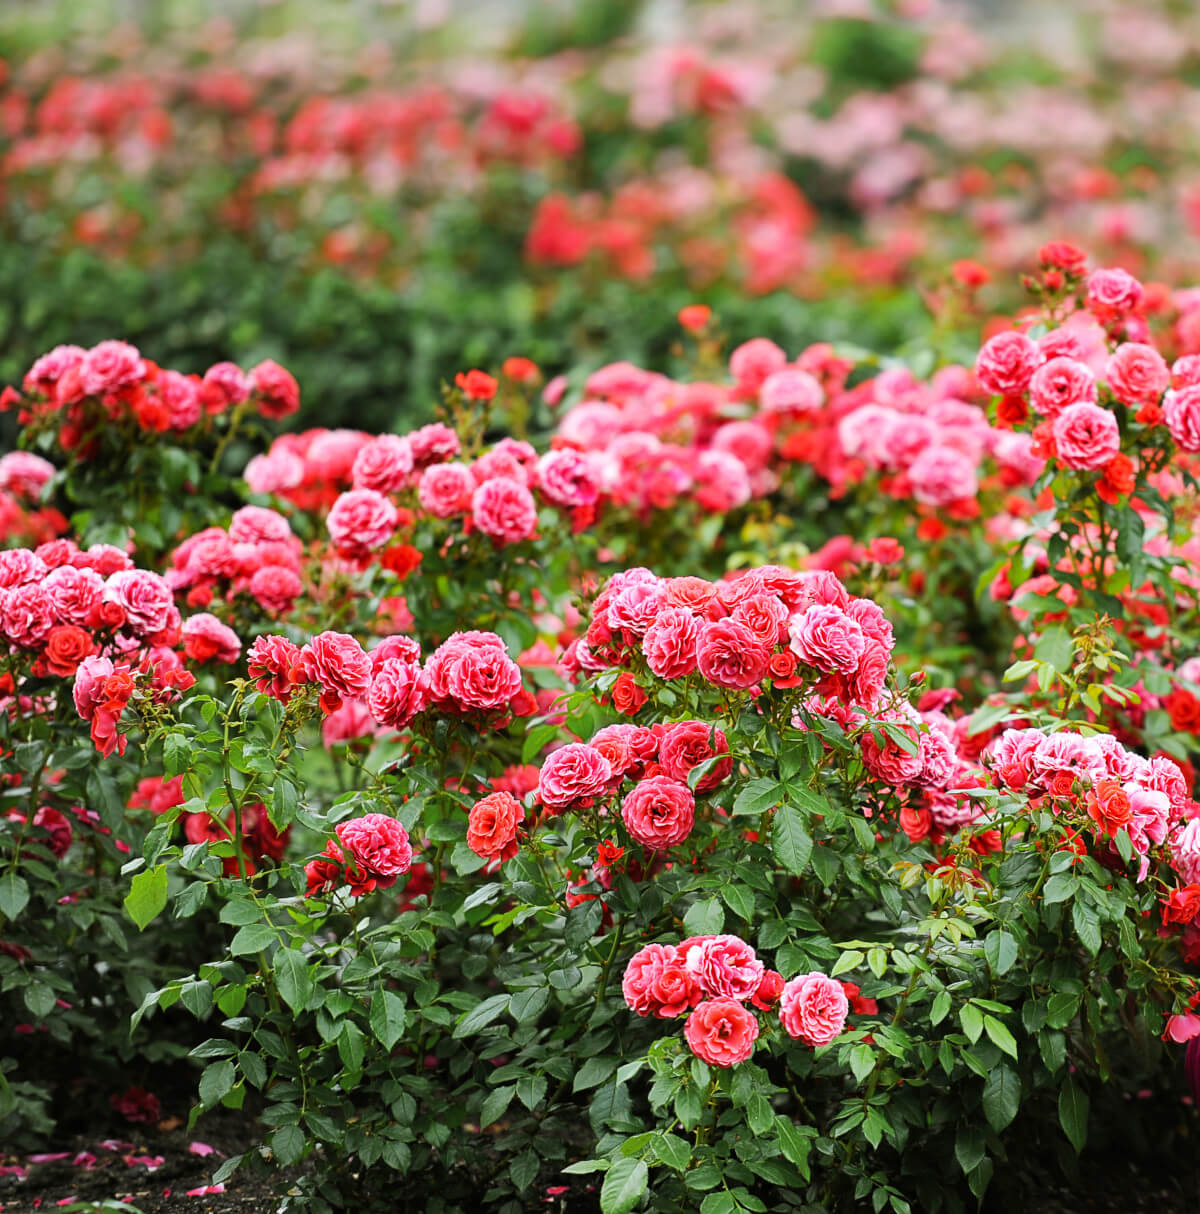 Beautiful pink and red rose garden